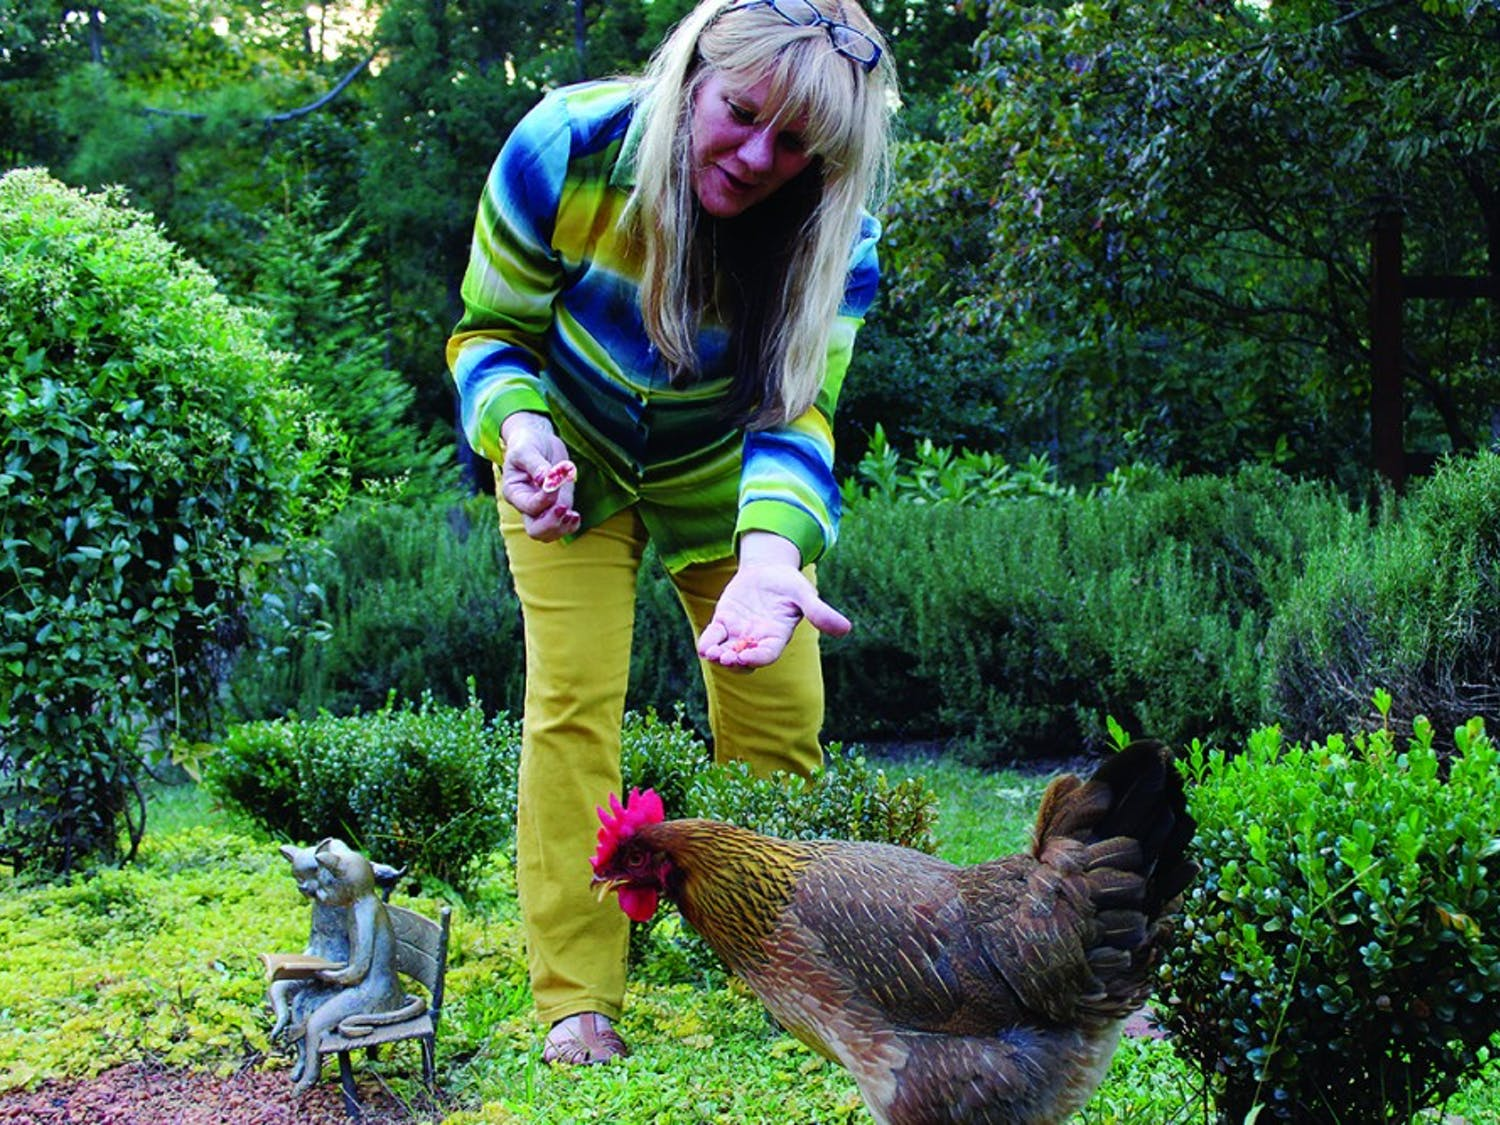 """Gigi Davidson with her chickens in her backyard on 9/9 in Pittsboro. """"I got the chickens when they were only day old chicks and now they are two years old. They are pretty easy maintenance and are great to have around"""" said Dede who graduated from UNC in 83'"""